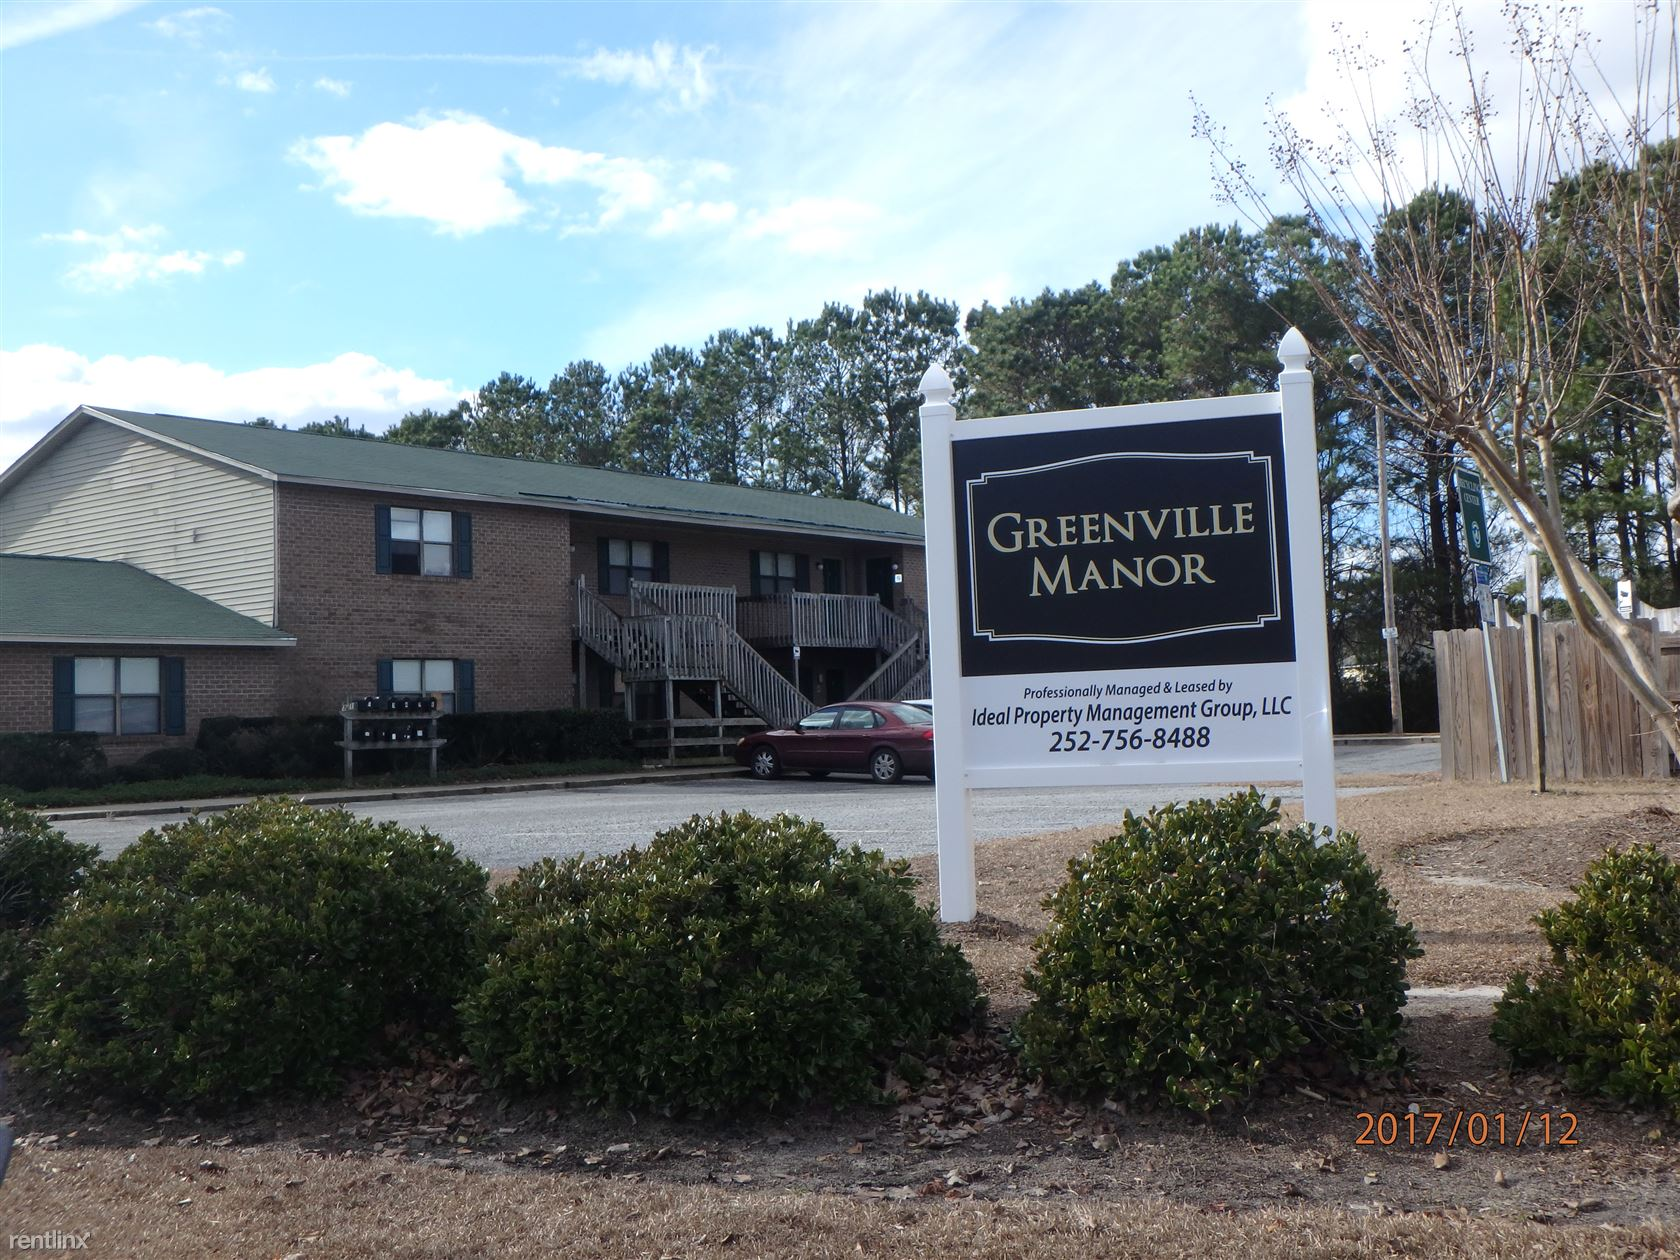 Greenville Manor Apartments